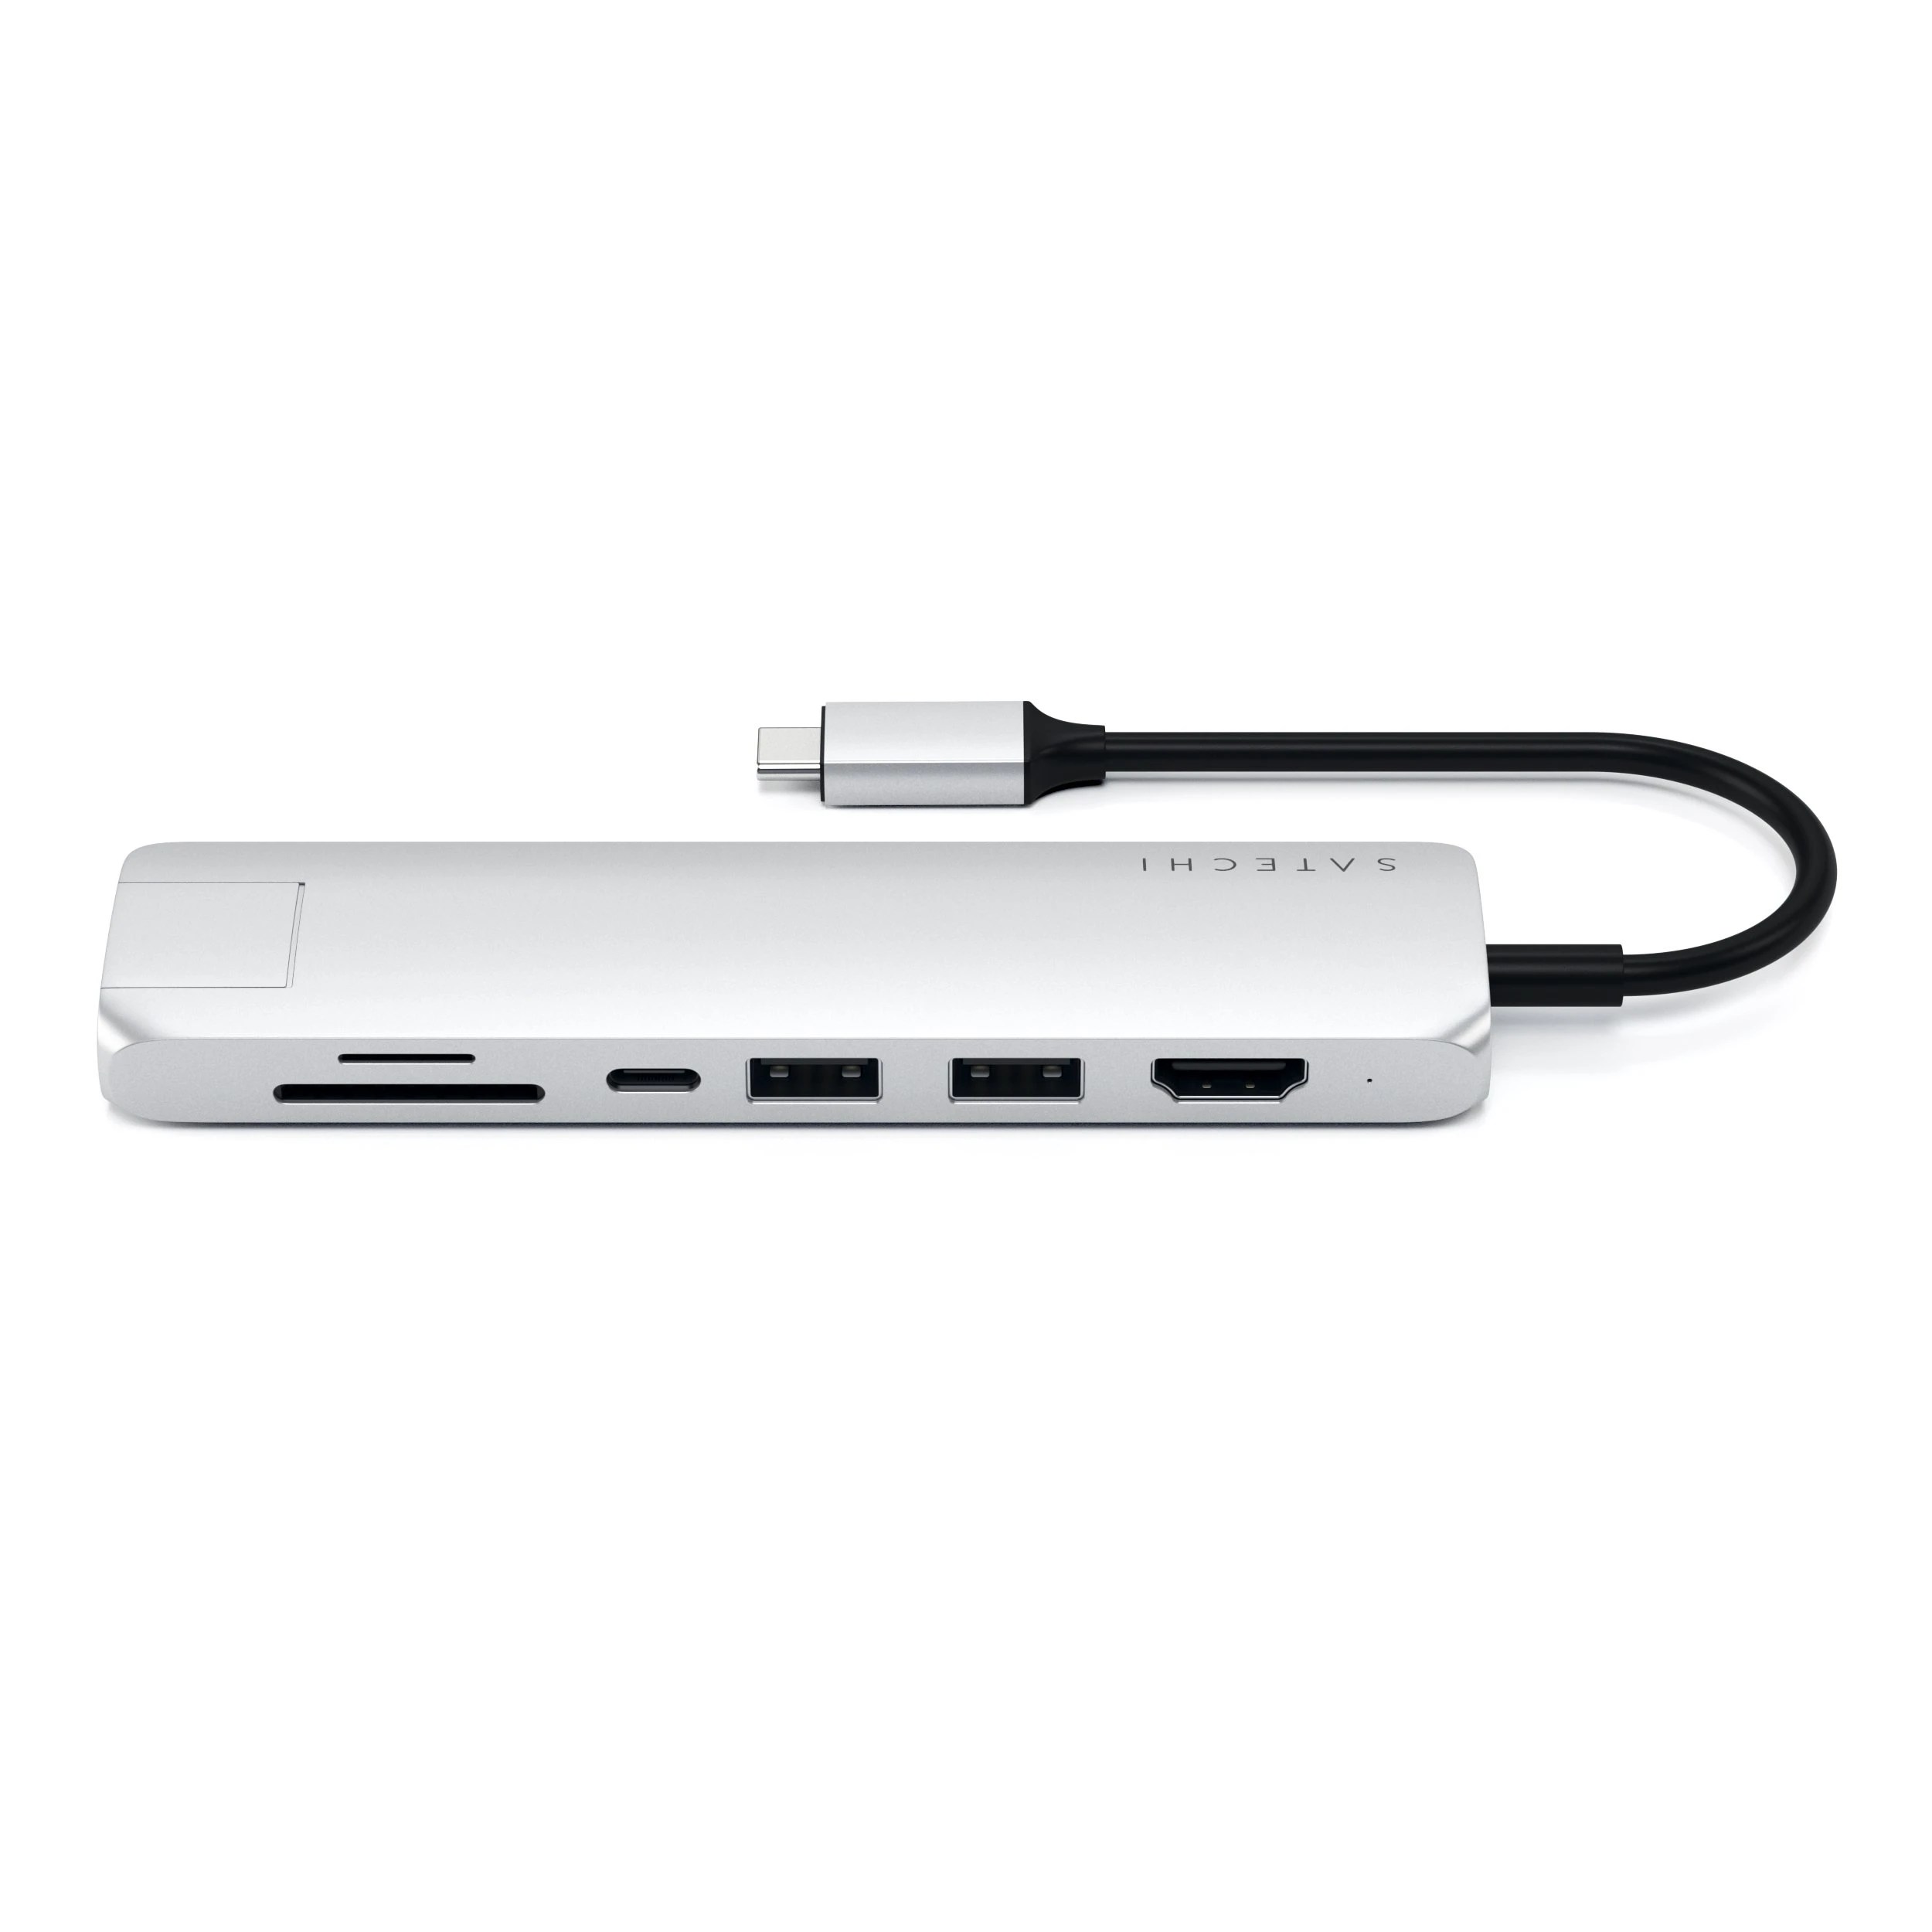 Satechi USB-C Slim Multiport with Ethernet Adapter - Silver, ST-UCSMA3S